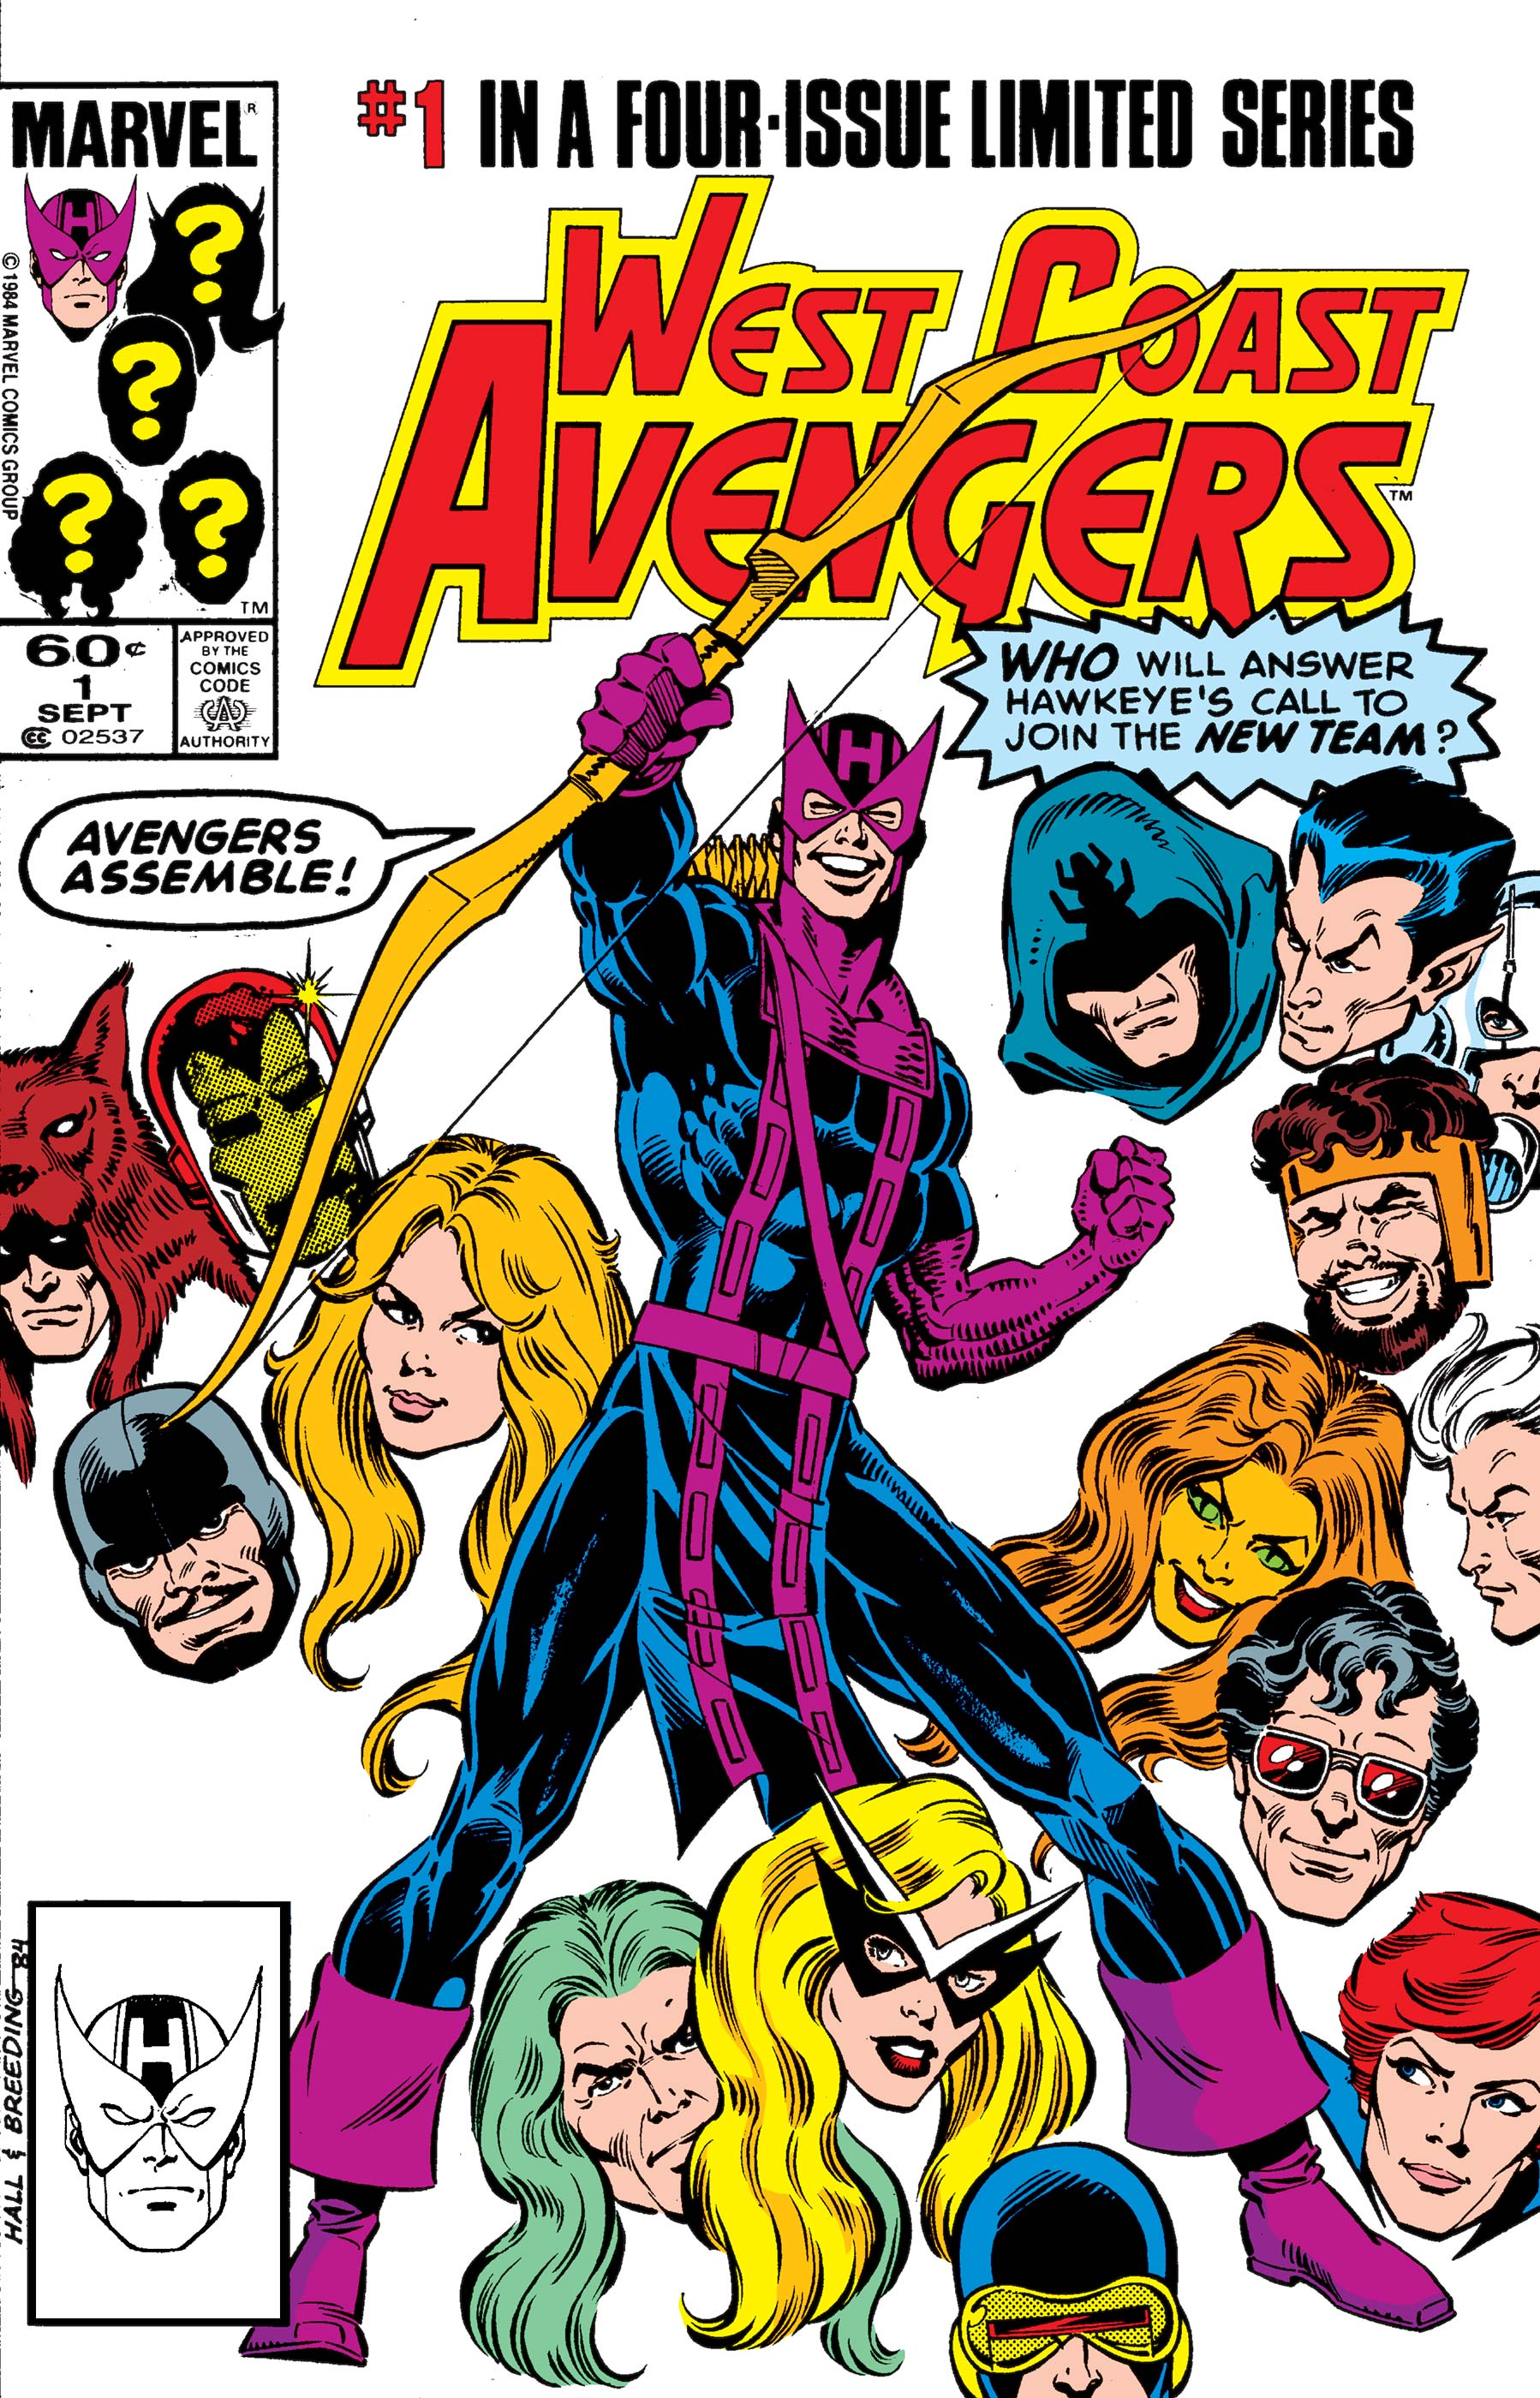 West Coast Avengers (1984) #1 | Comic Issues | Marvel